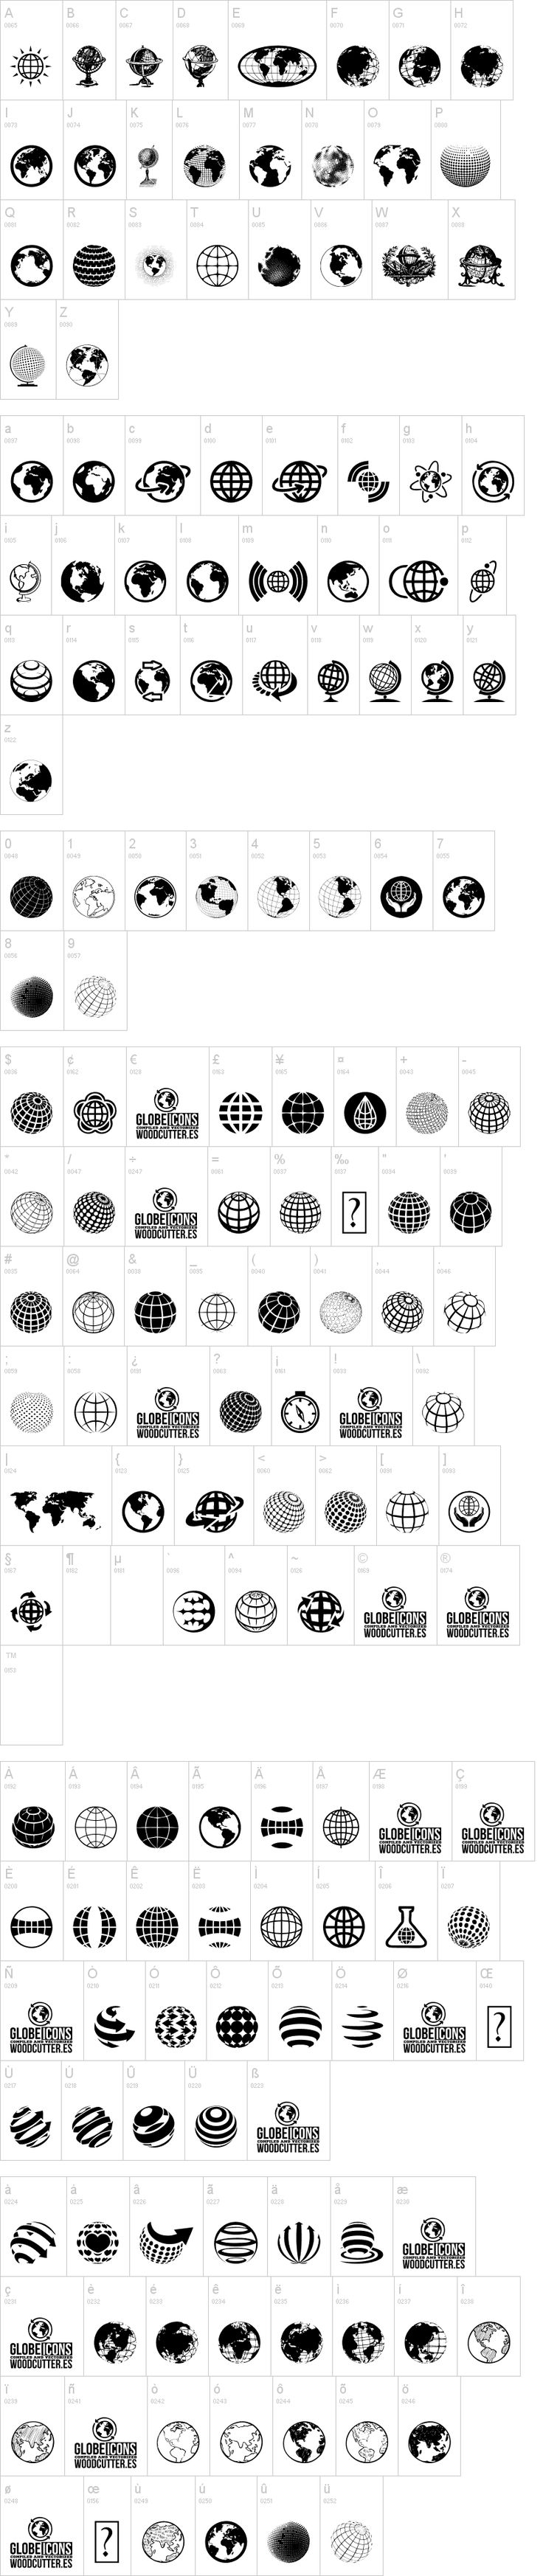 Globe icons by Woodcutter